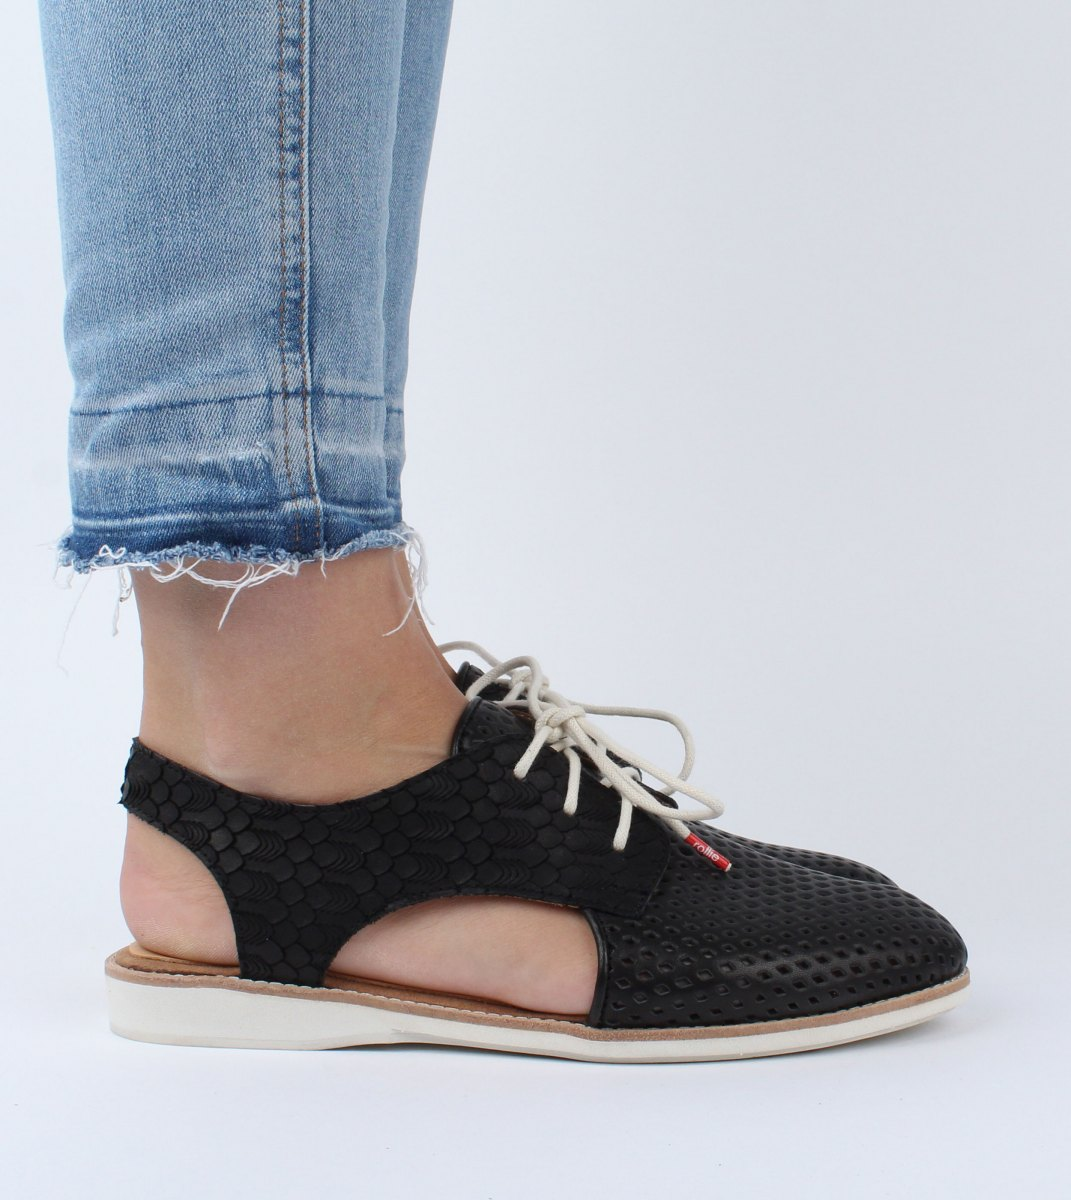 Rollie-Derby_Slingback_Punch-Black_Geo_Black-M2